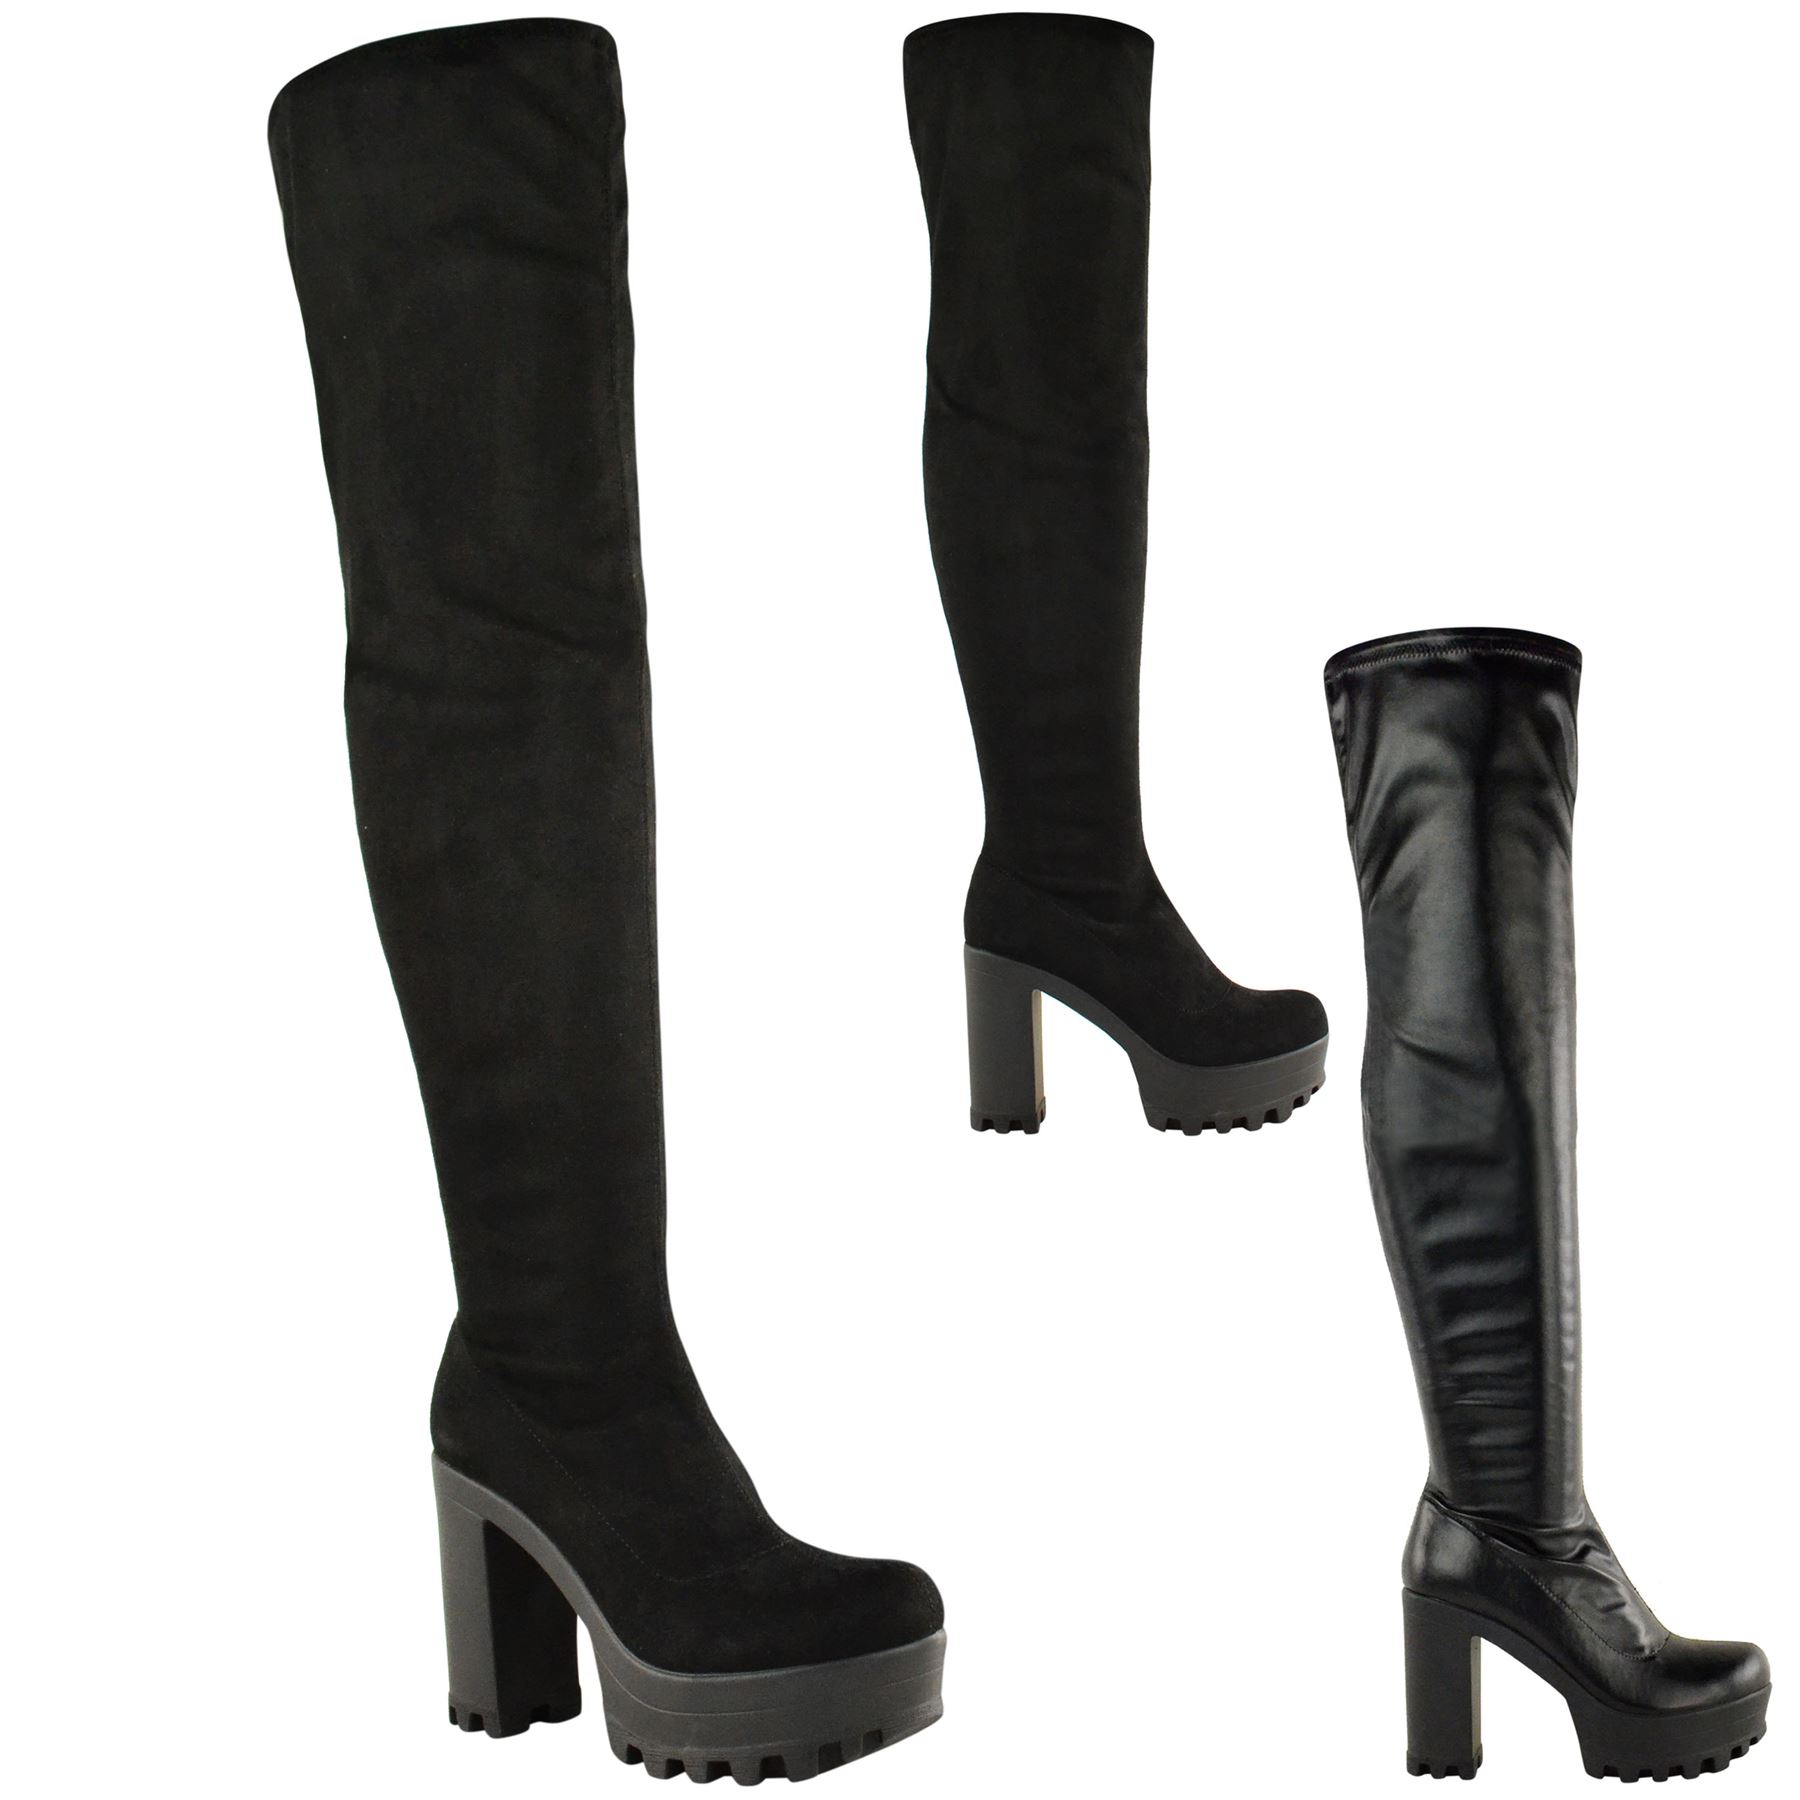 WOMENS OVER THE KNEE THIGH HIGH CHUNKY PLATFORM BLOCK HEEL BOOTS ...